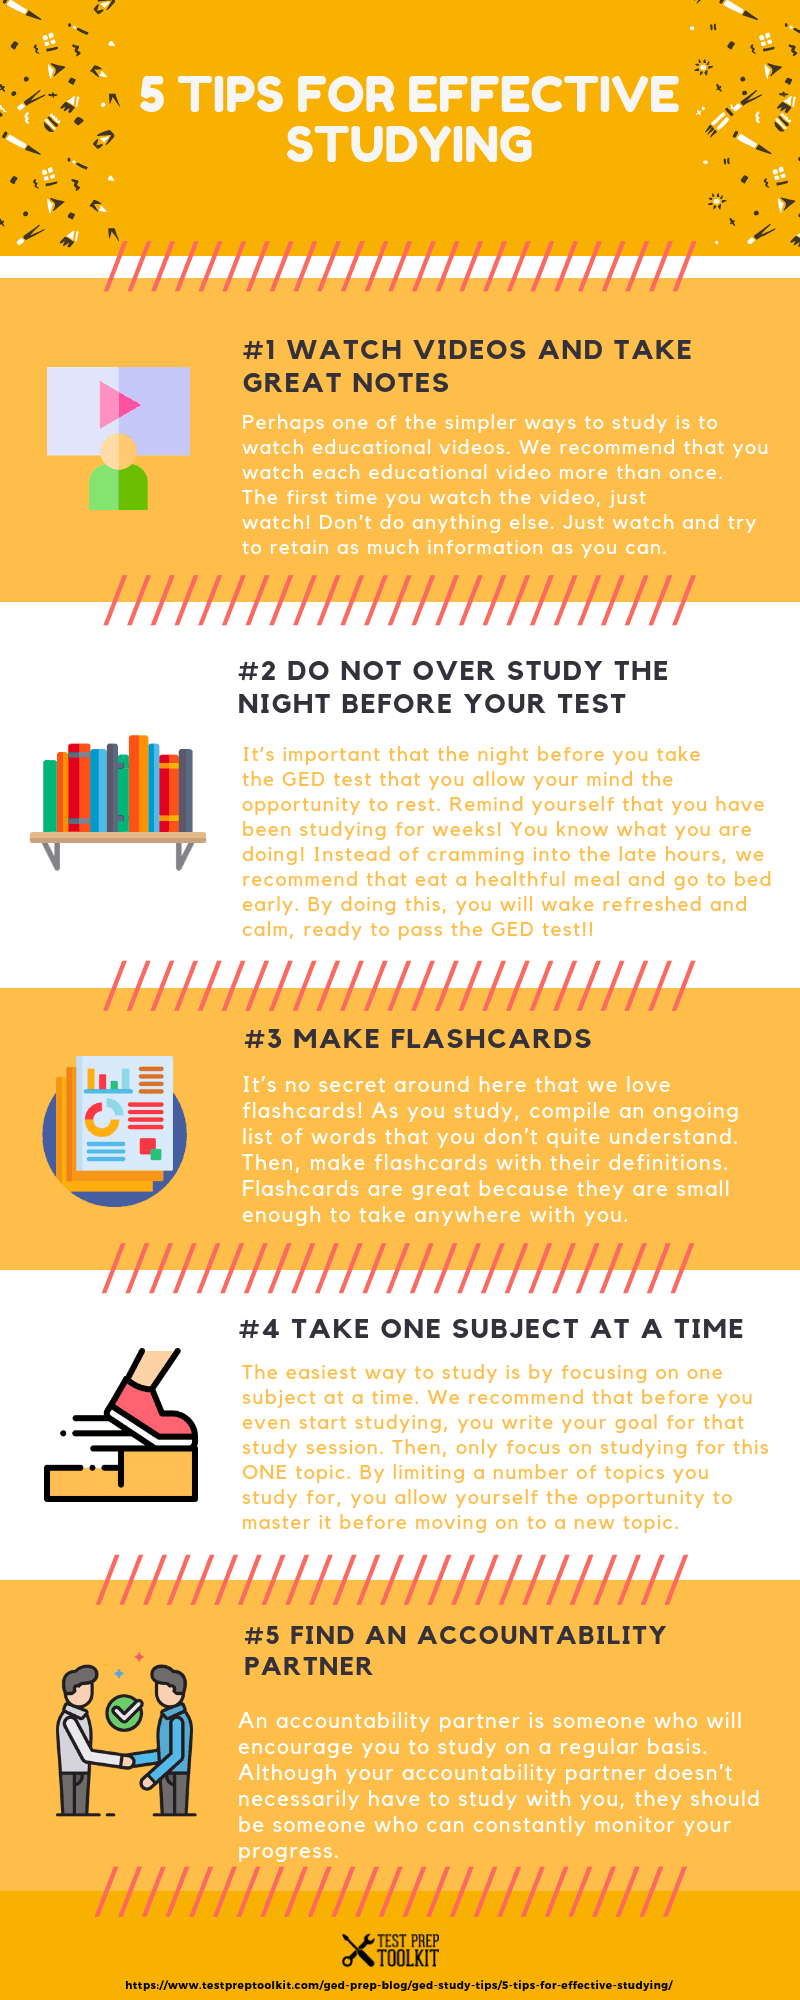 Tips for Effective Studying